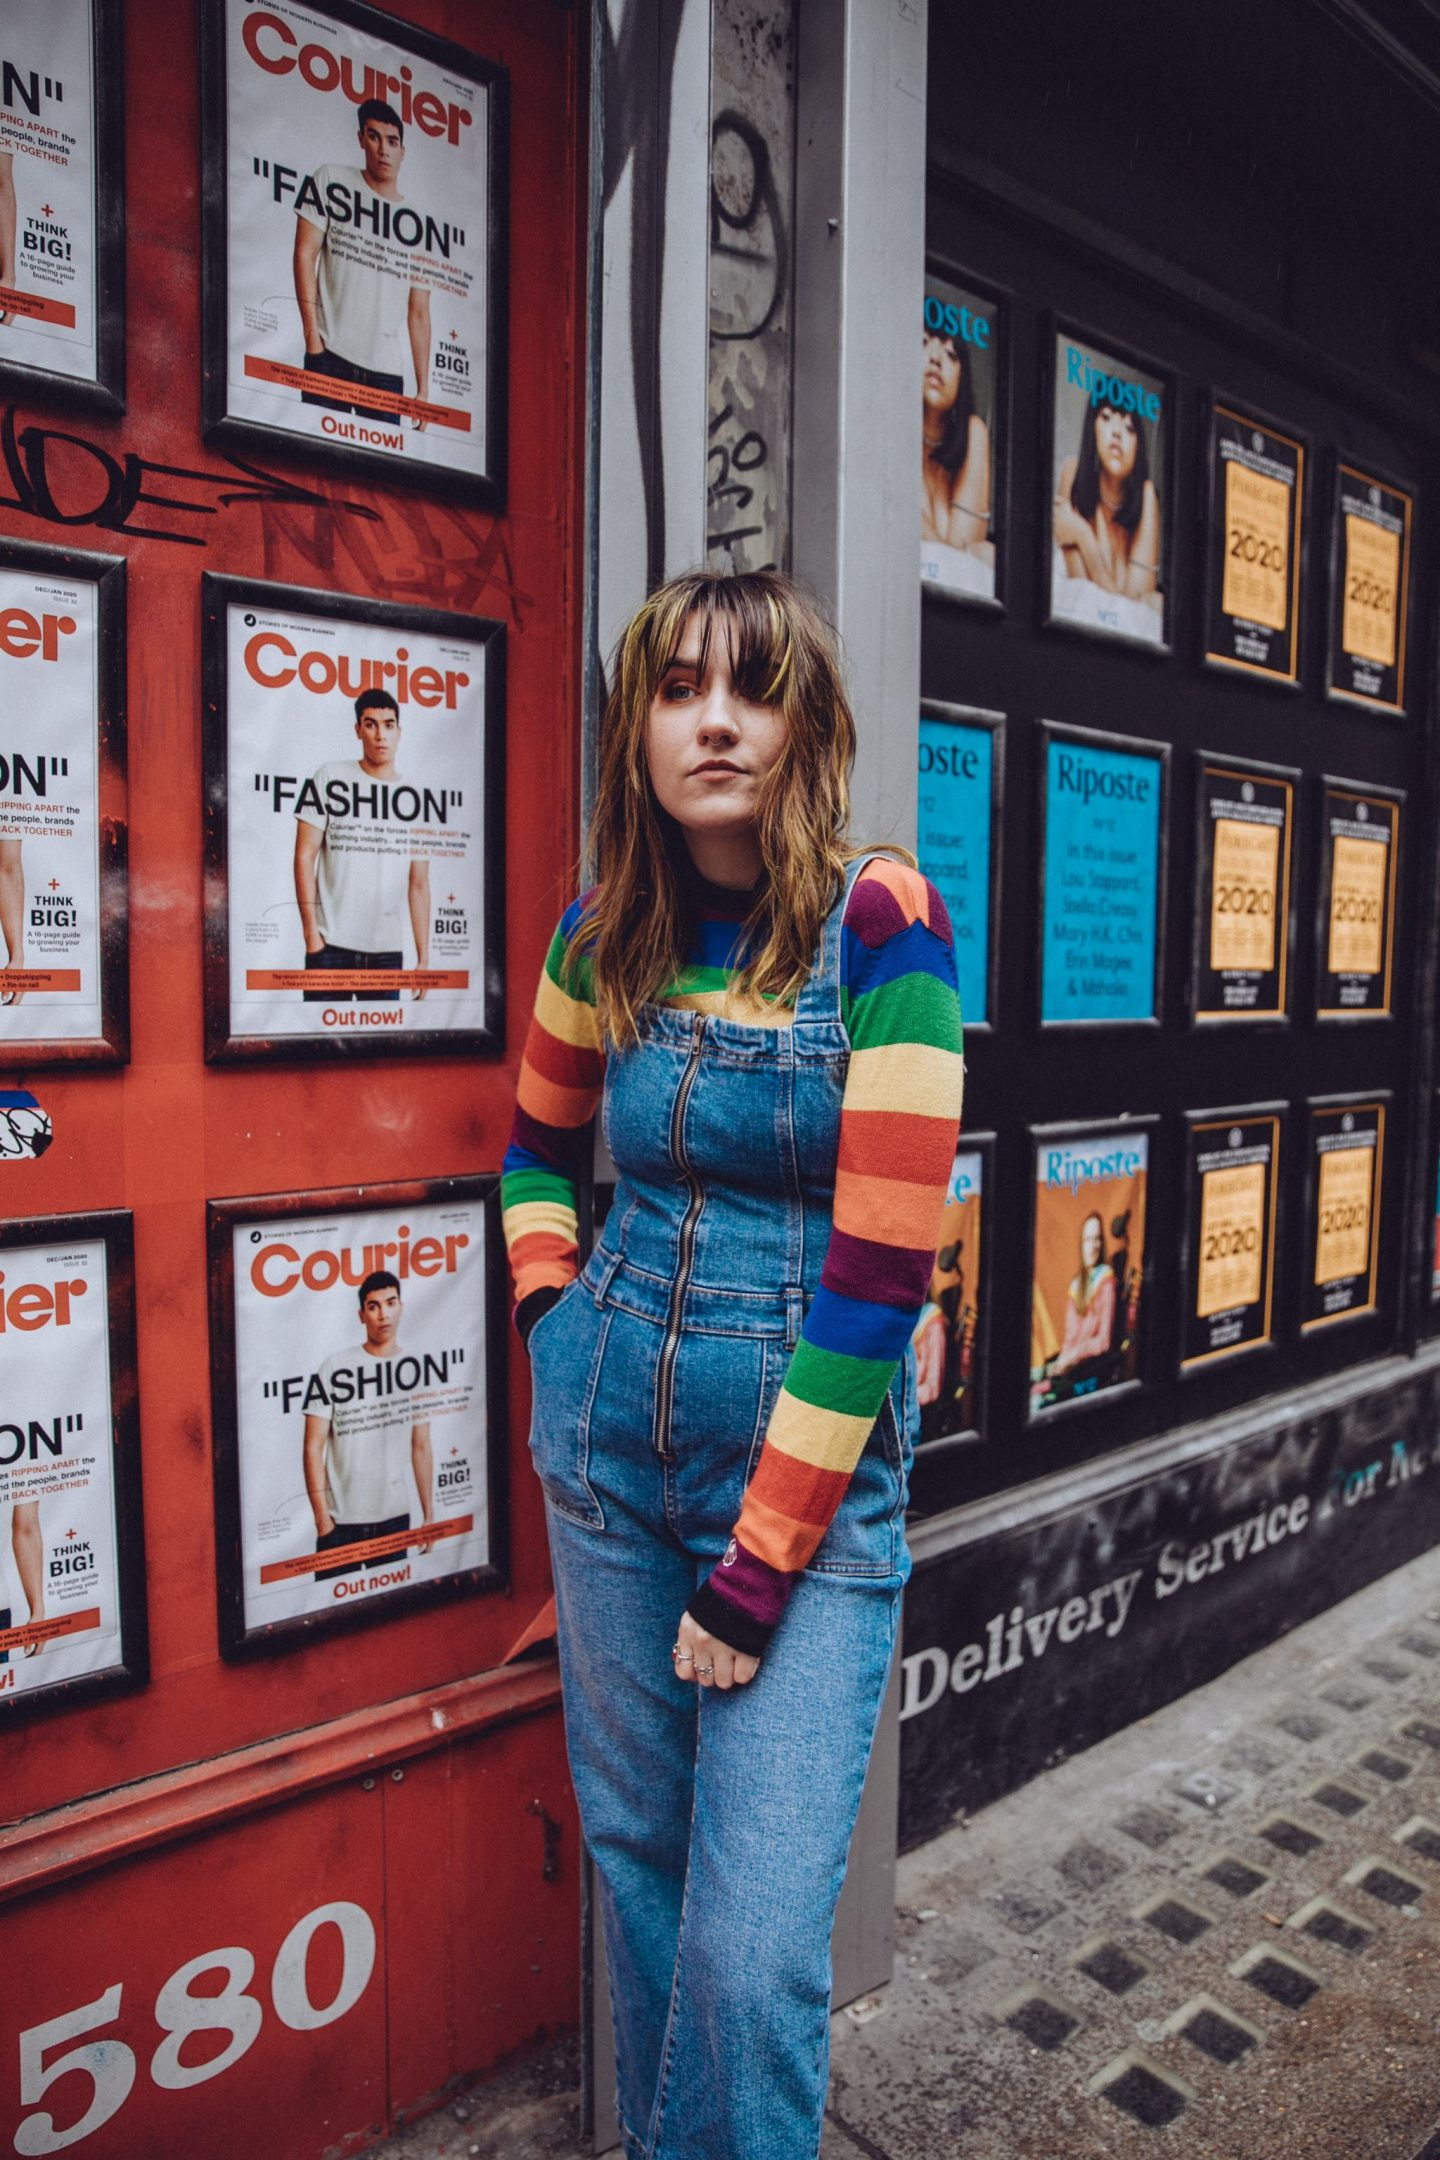 Looking Back On 2019 - dungaree & rainbow knit outfit